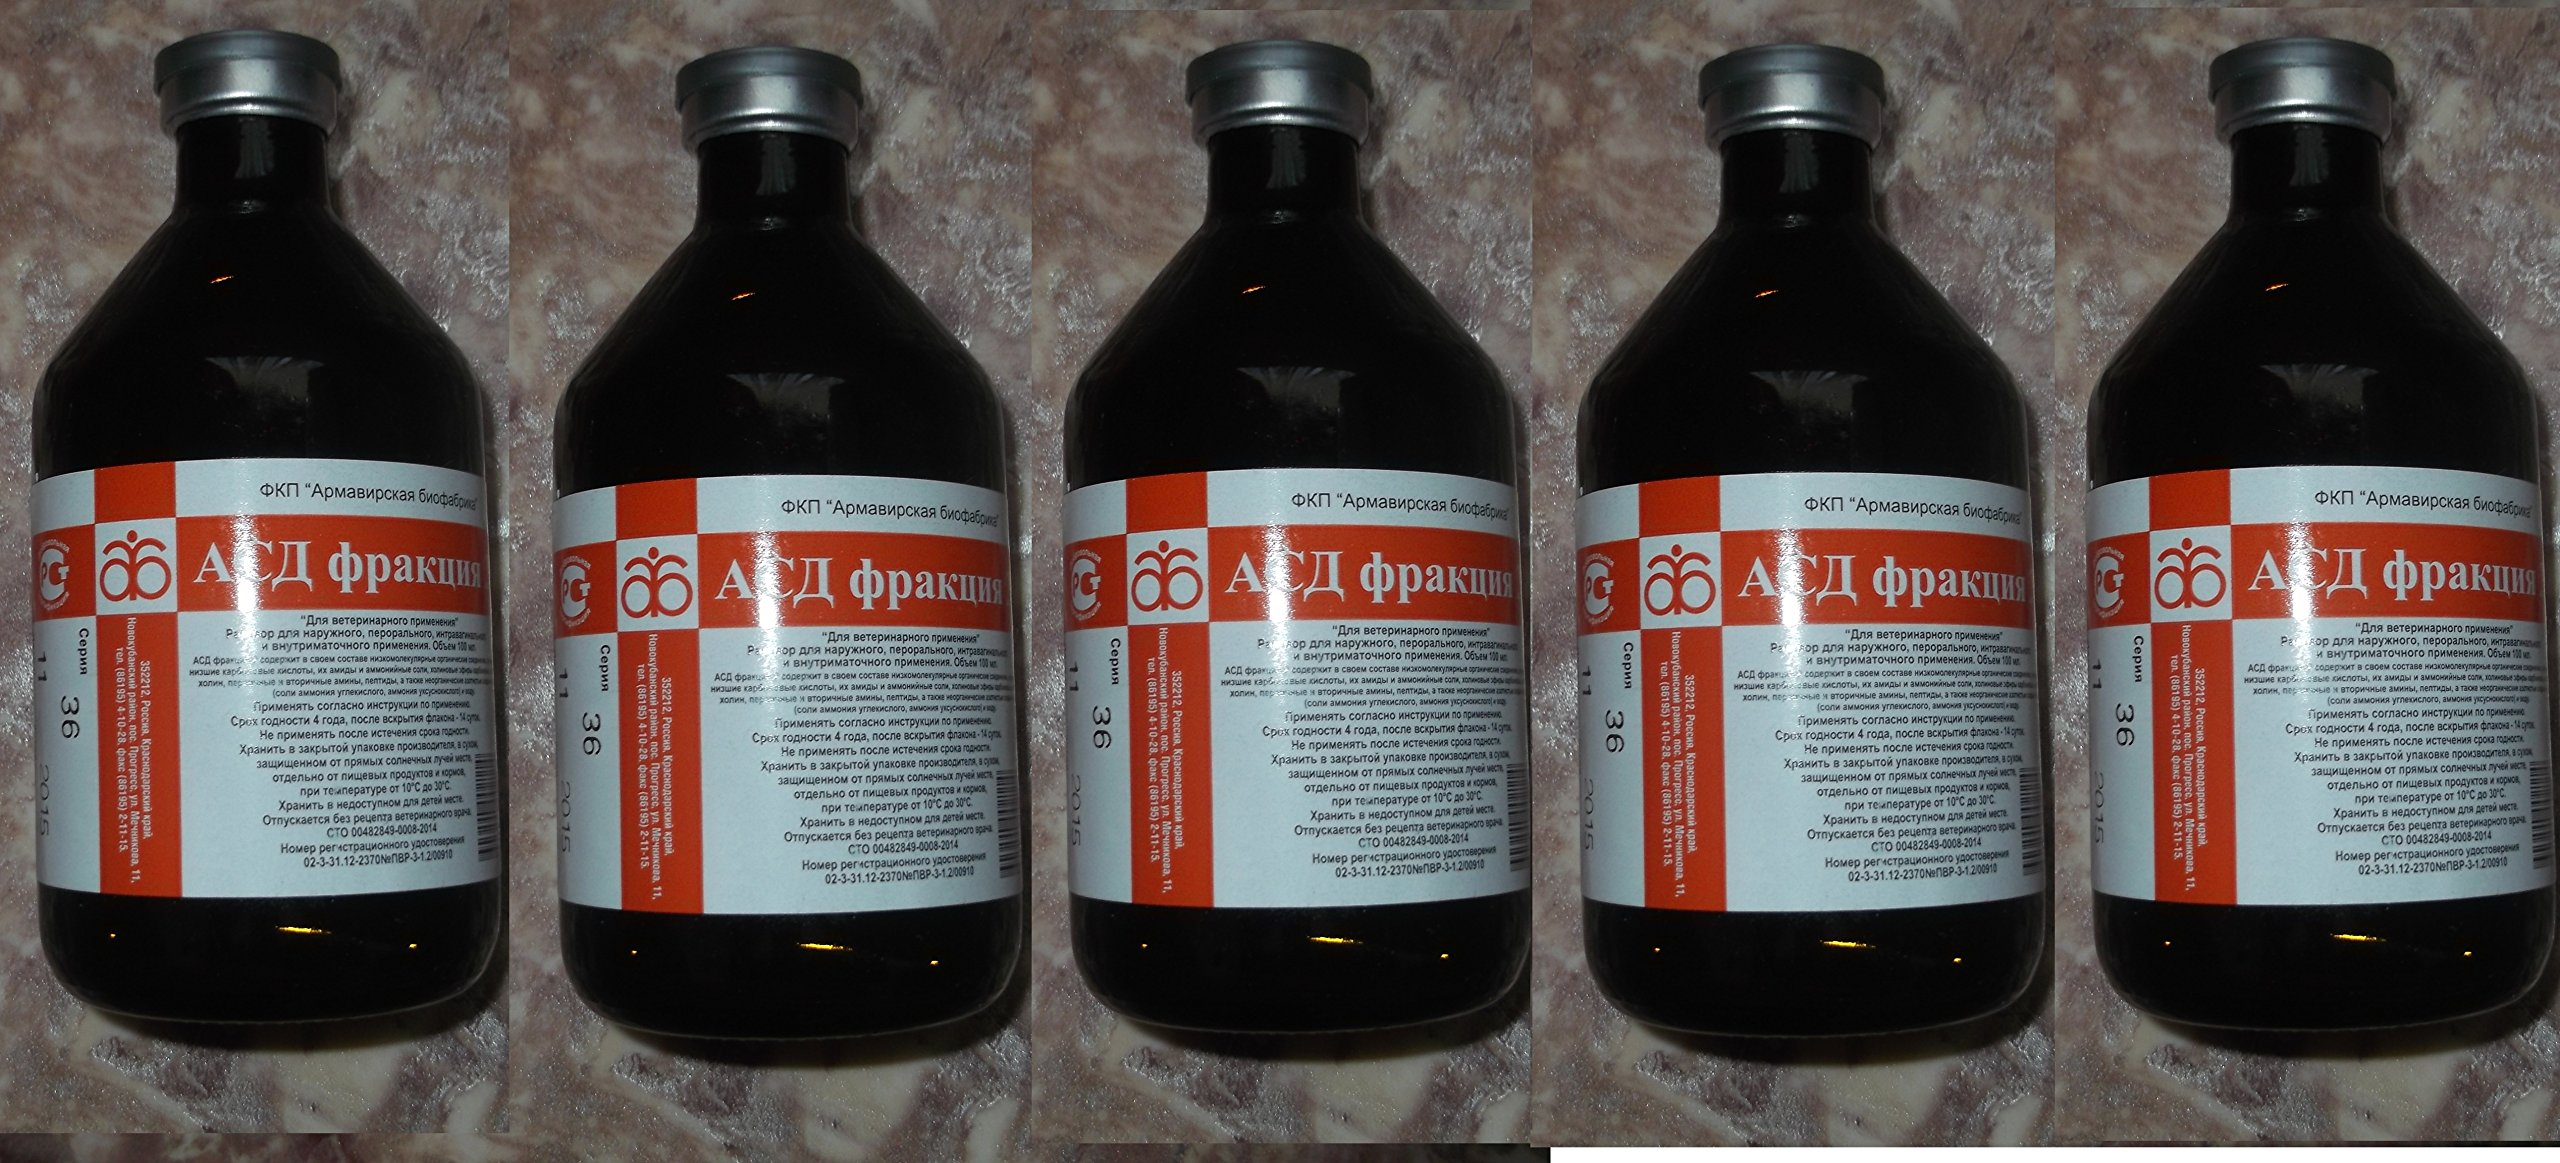 5 x ASD-2 (АСД) fraction for INTERNAL USE 100ml (A. Dorogov) (for treatment of PETS and ANIMALS: immunomodulator, oncology)